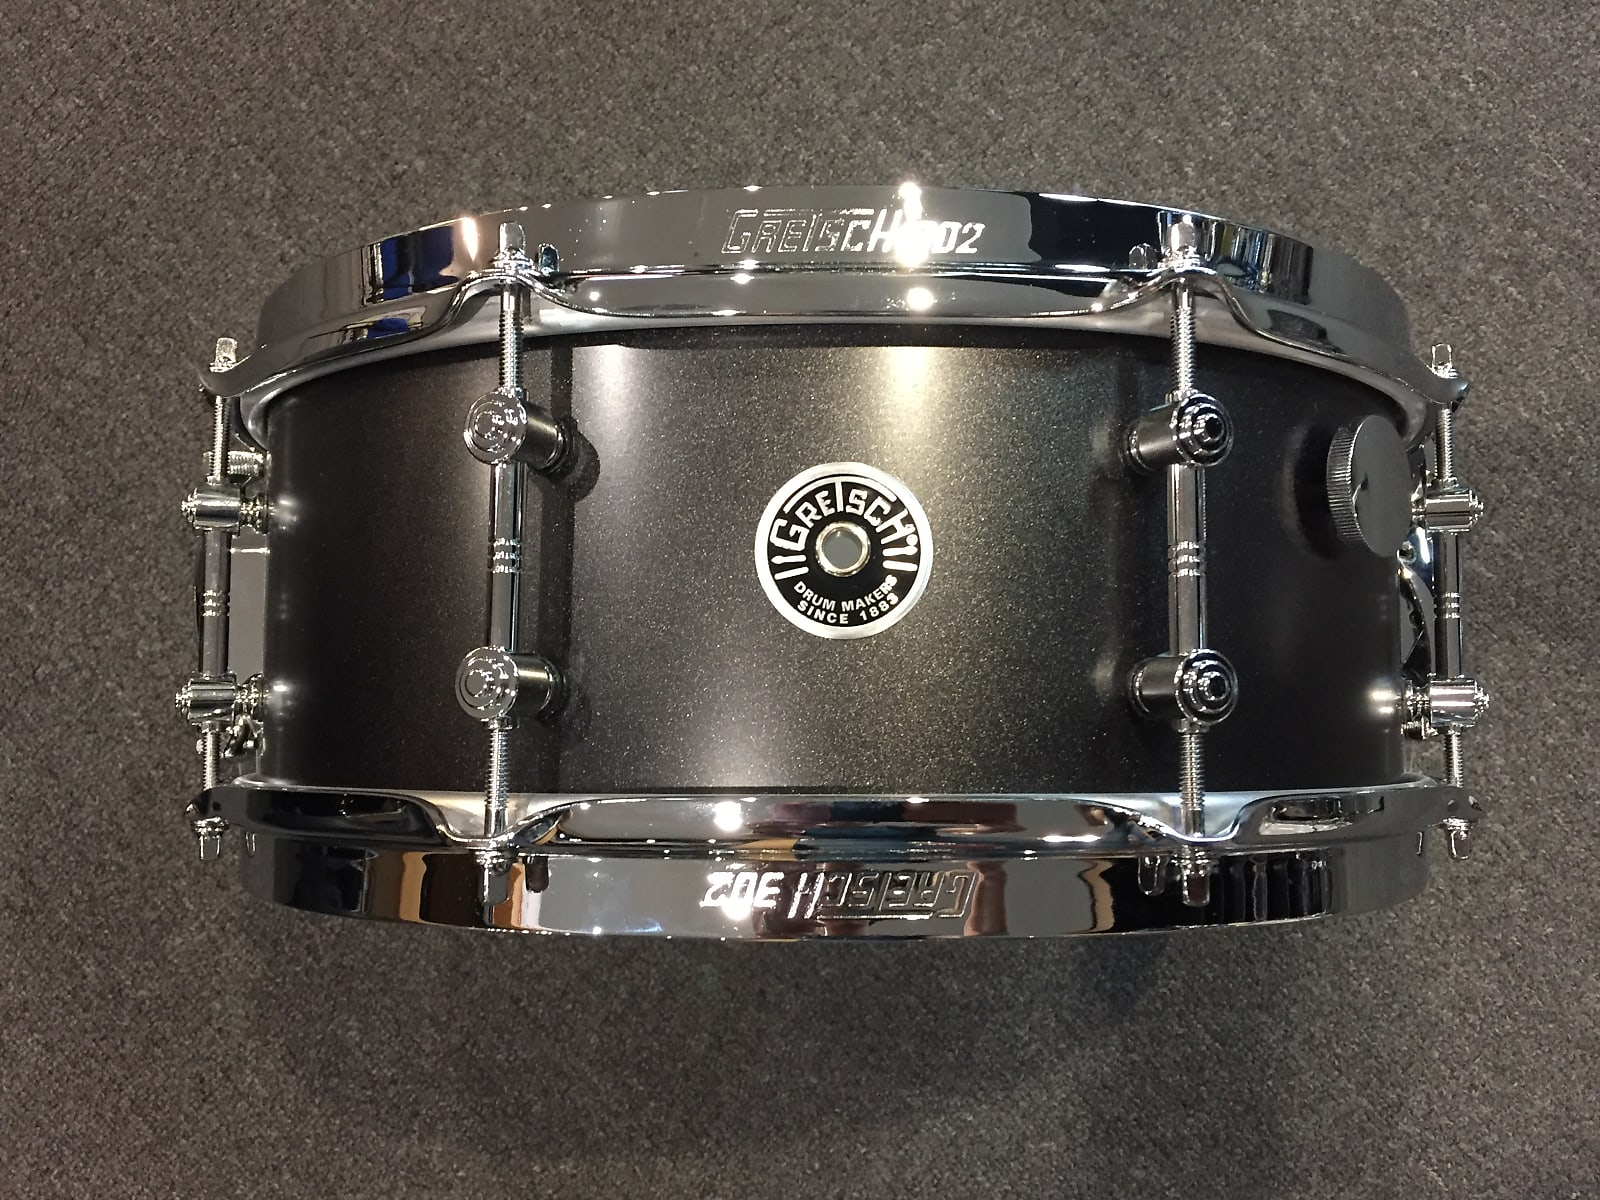 Gretsch 2020 Brooklyn Standard Mike Johnston 5.5x14 Snare Drum (In Stock!)